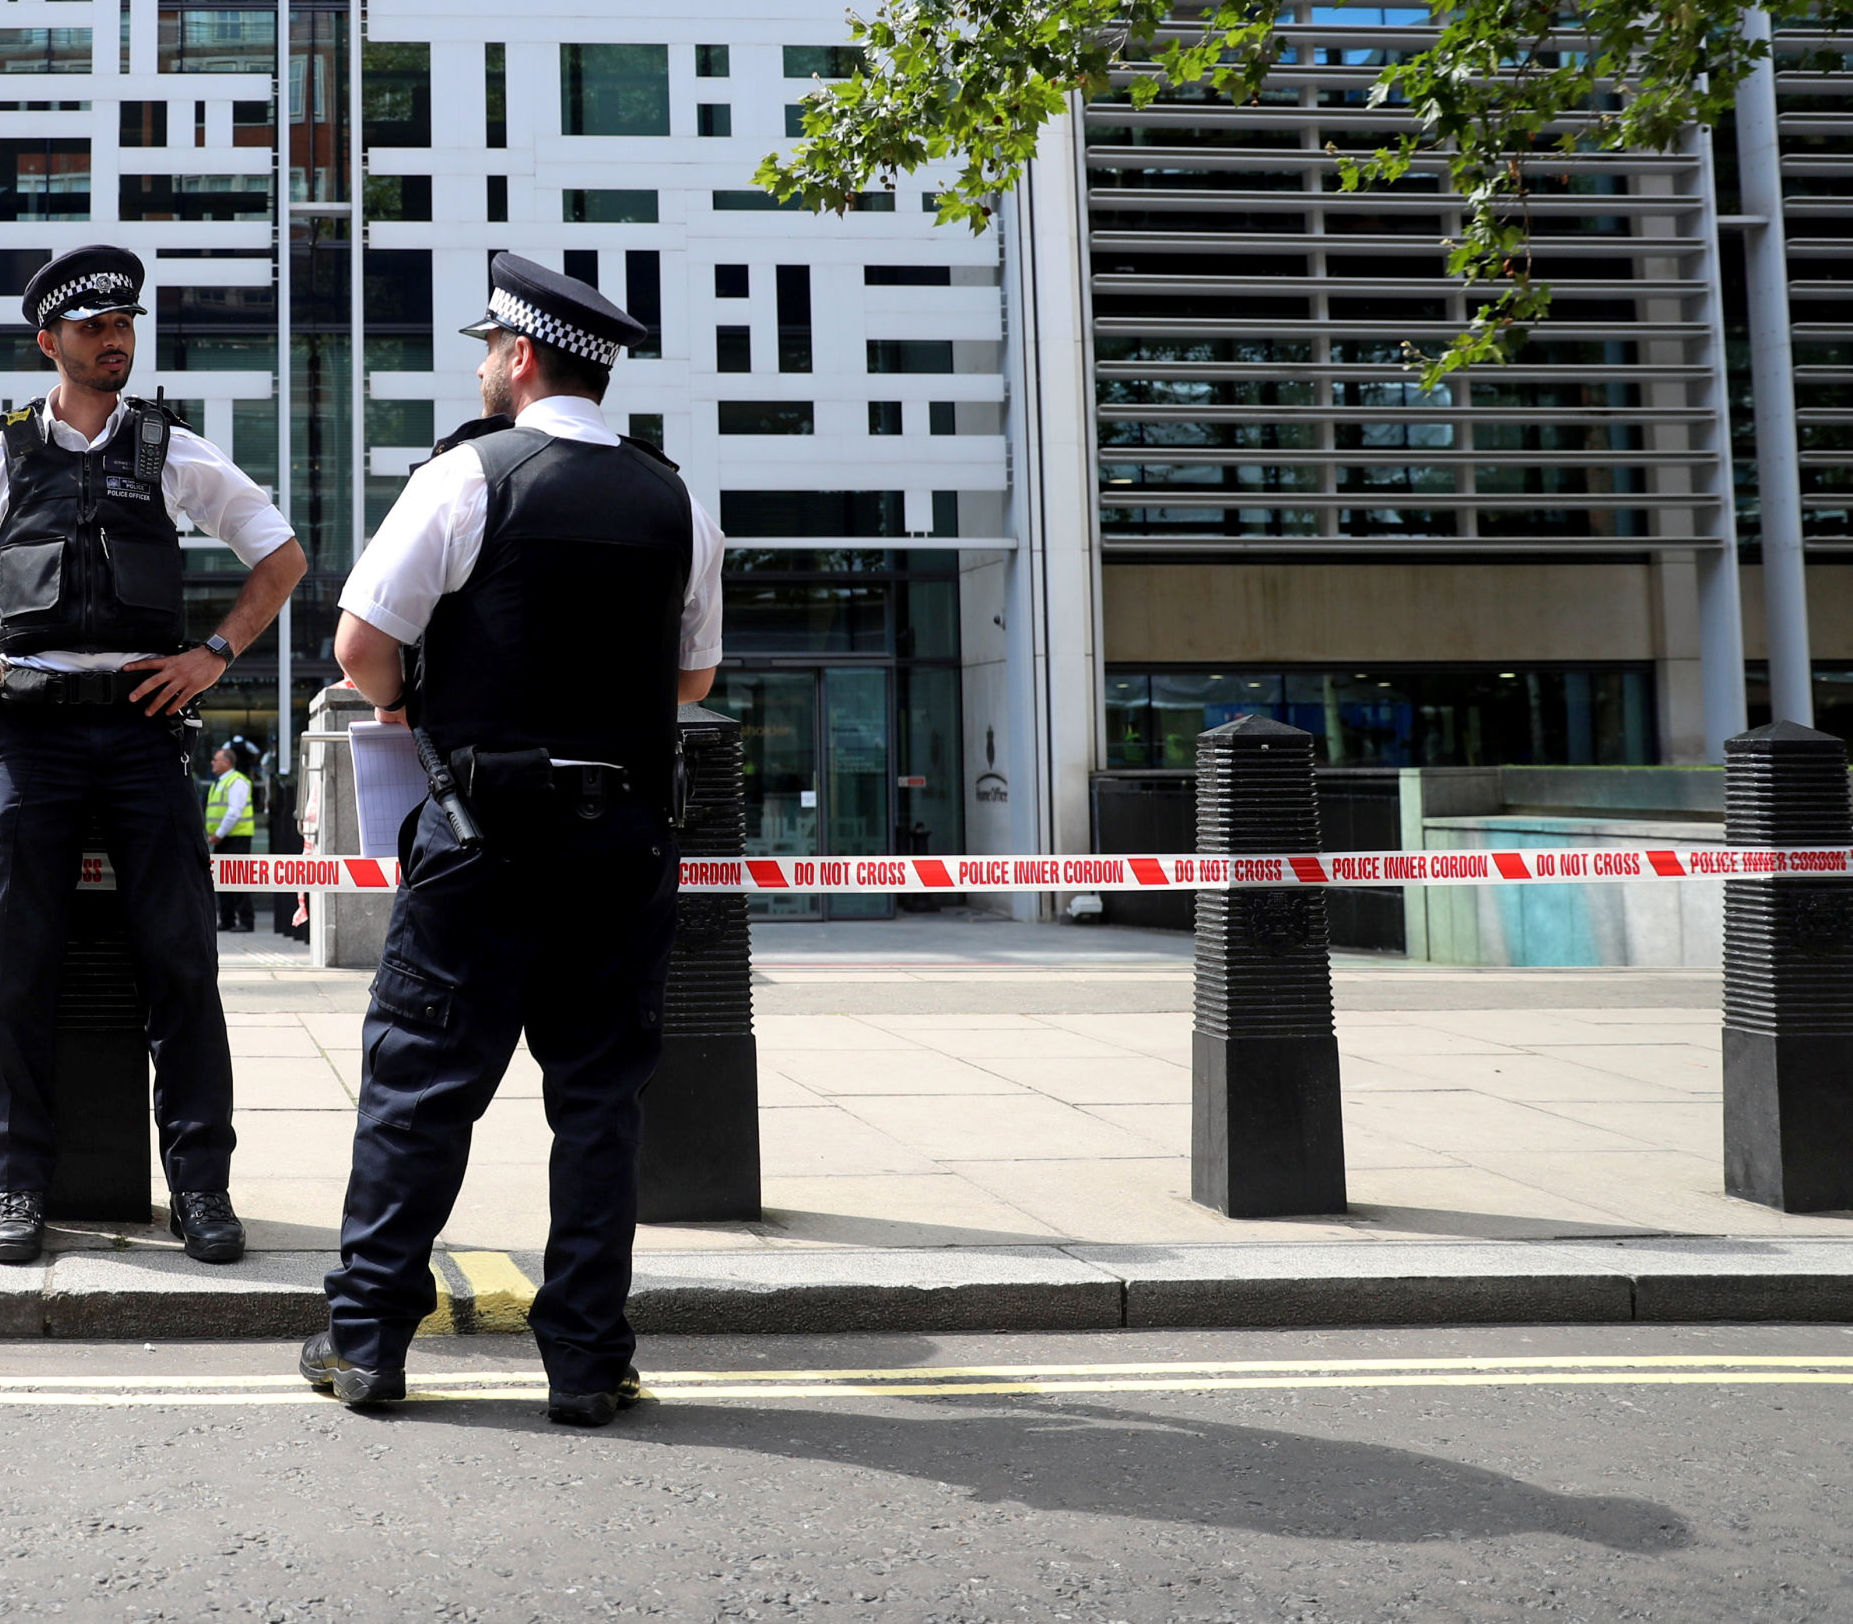 Police officers stand guard in front of the Home Office in London, Britain August 15, 2019.